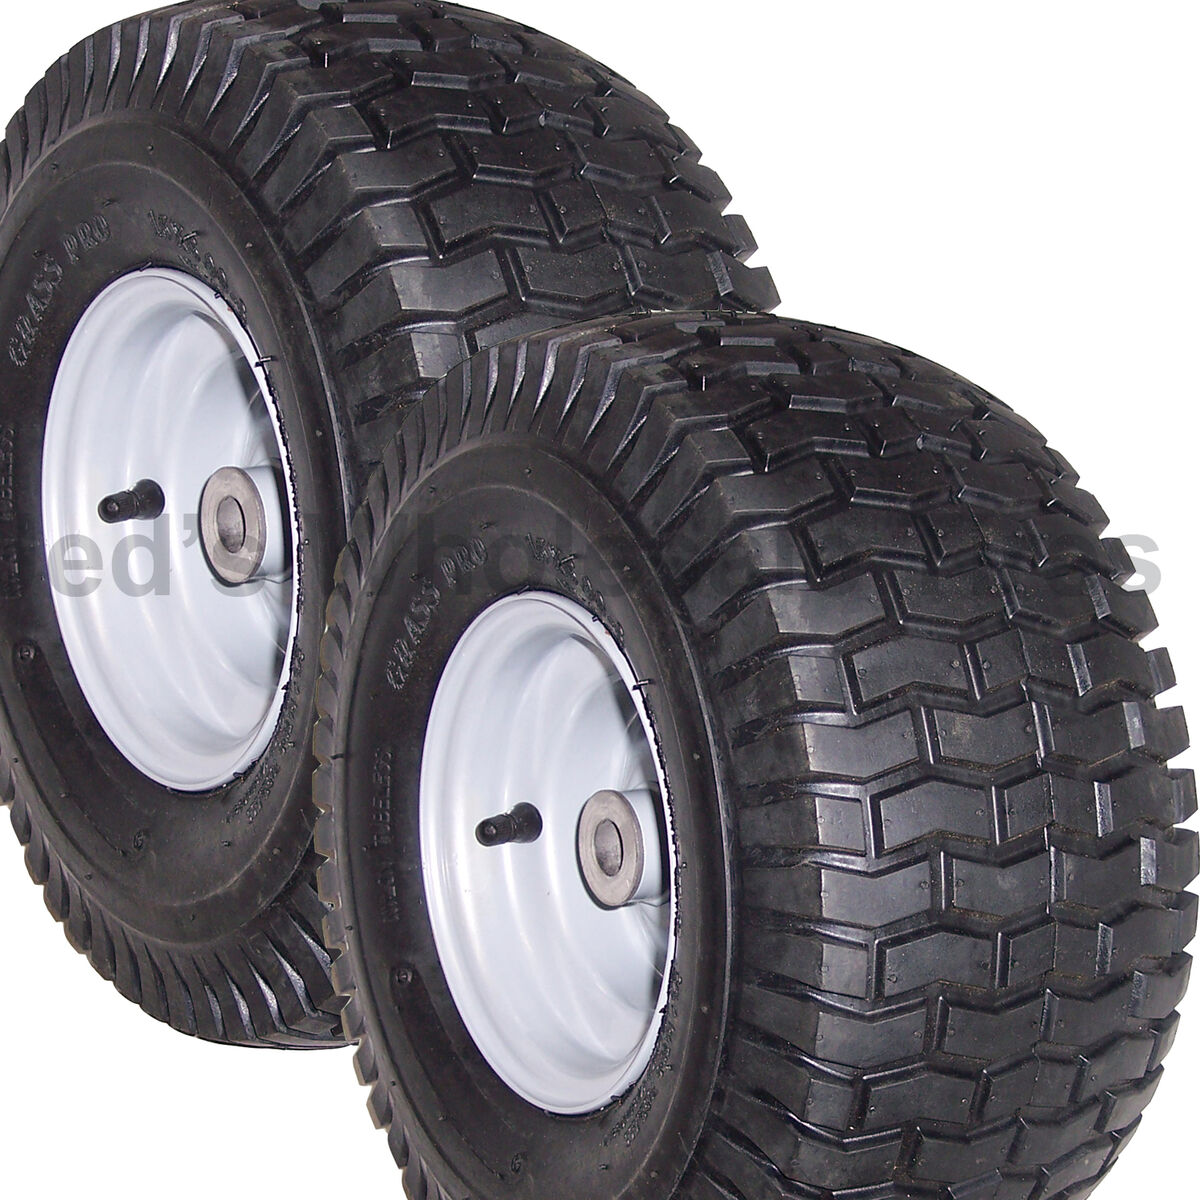 Riding Lawn Mower Rims : Riding lawn mower garden tractor tire